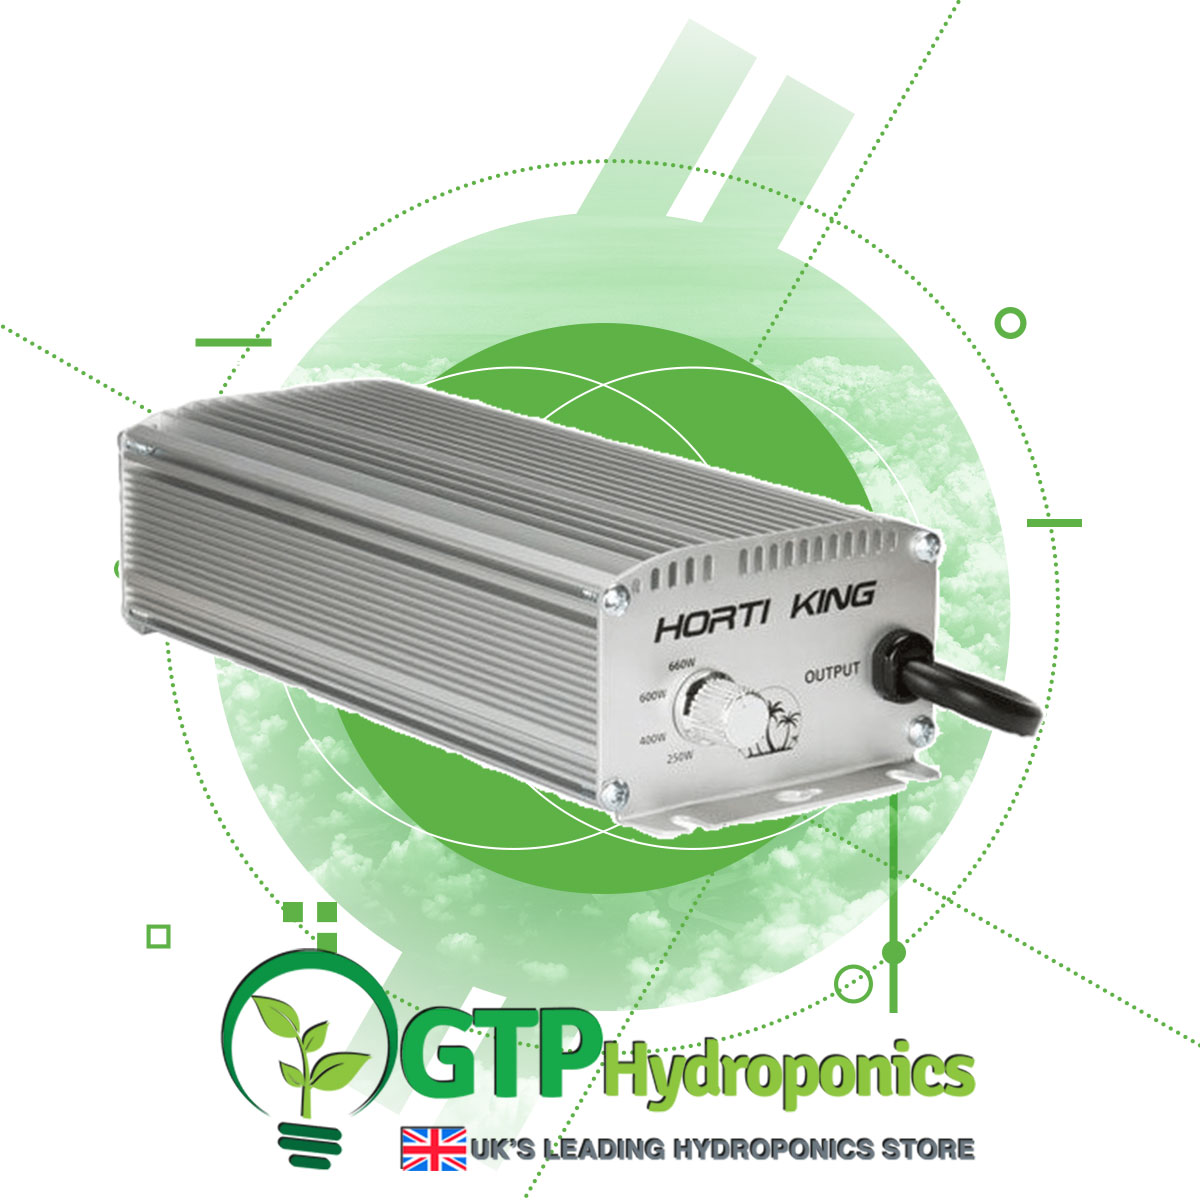 Horti King Dimmable Digital Ballast 660w product